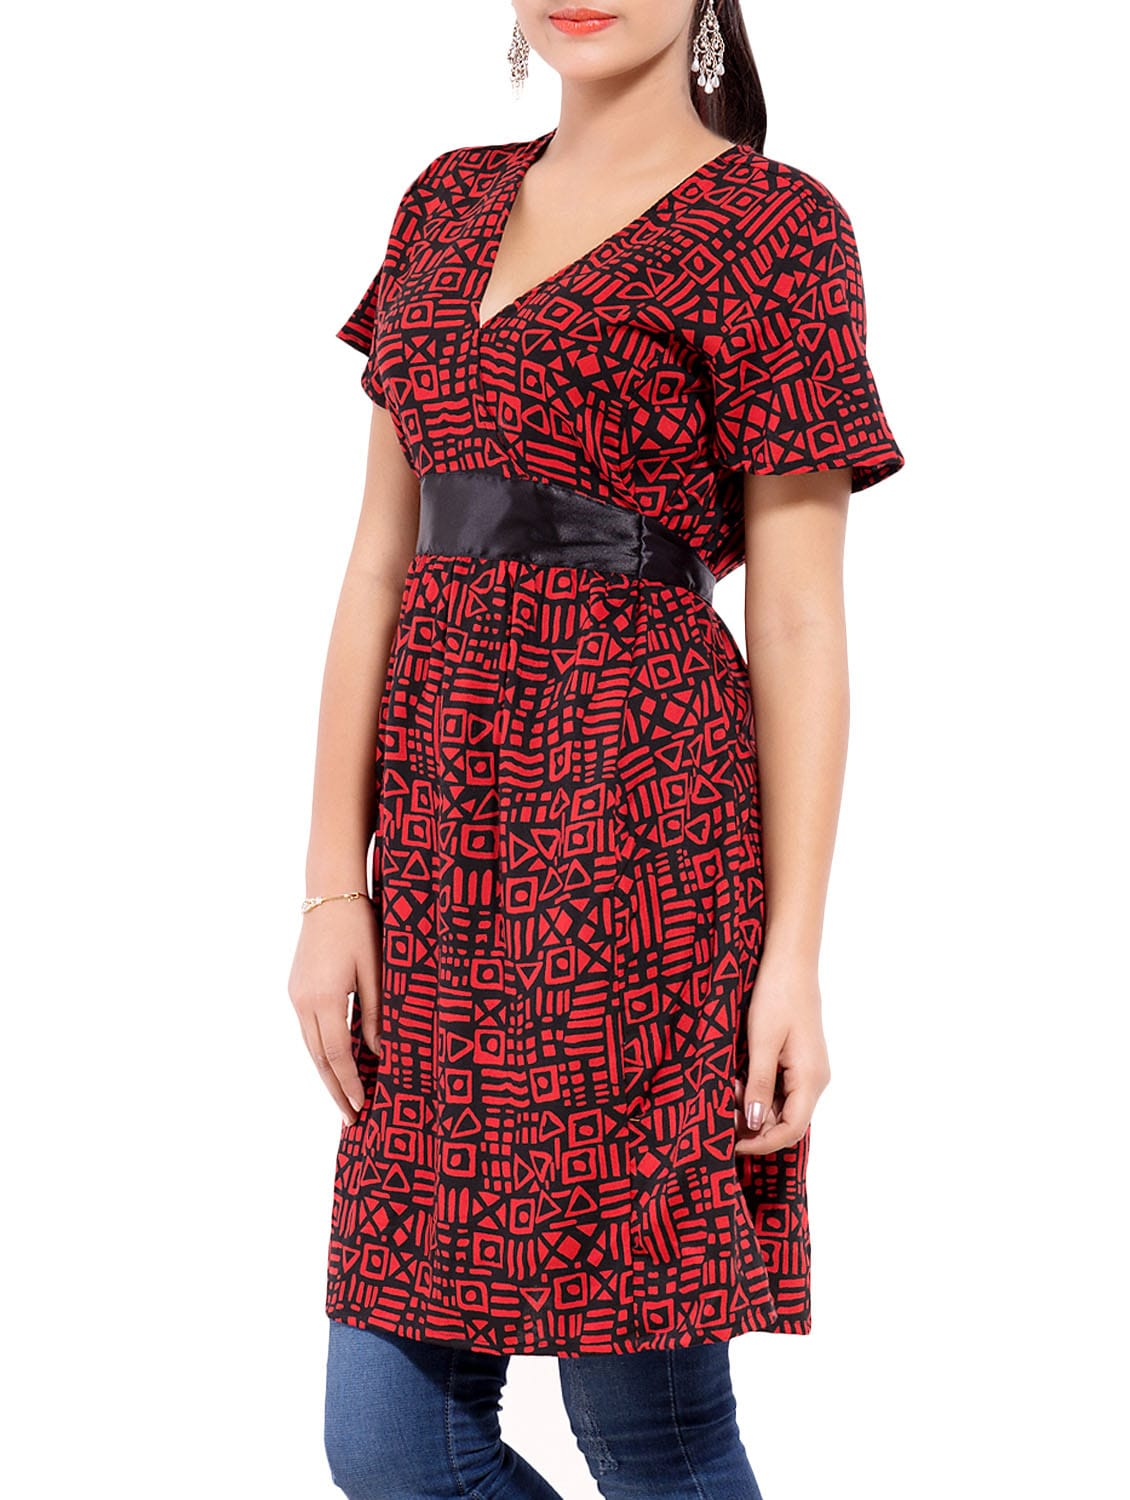 e95b4cc3683 Buy Red Rayon Printed A-line Tunic for Women from Goodwill for ₹519 at 48%  off | 2019 Limeroad.com